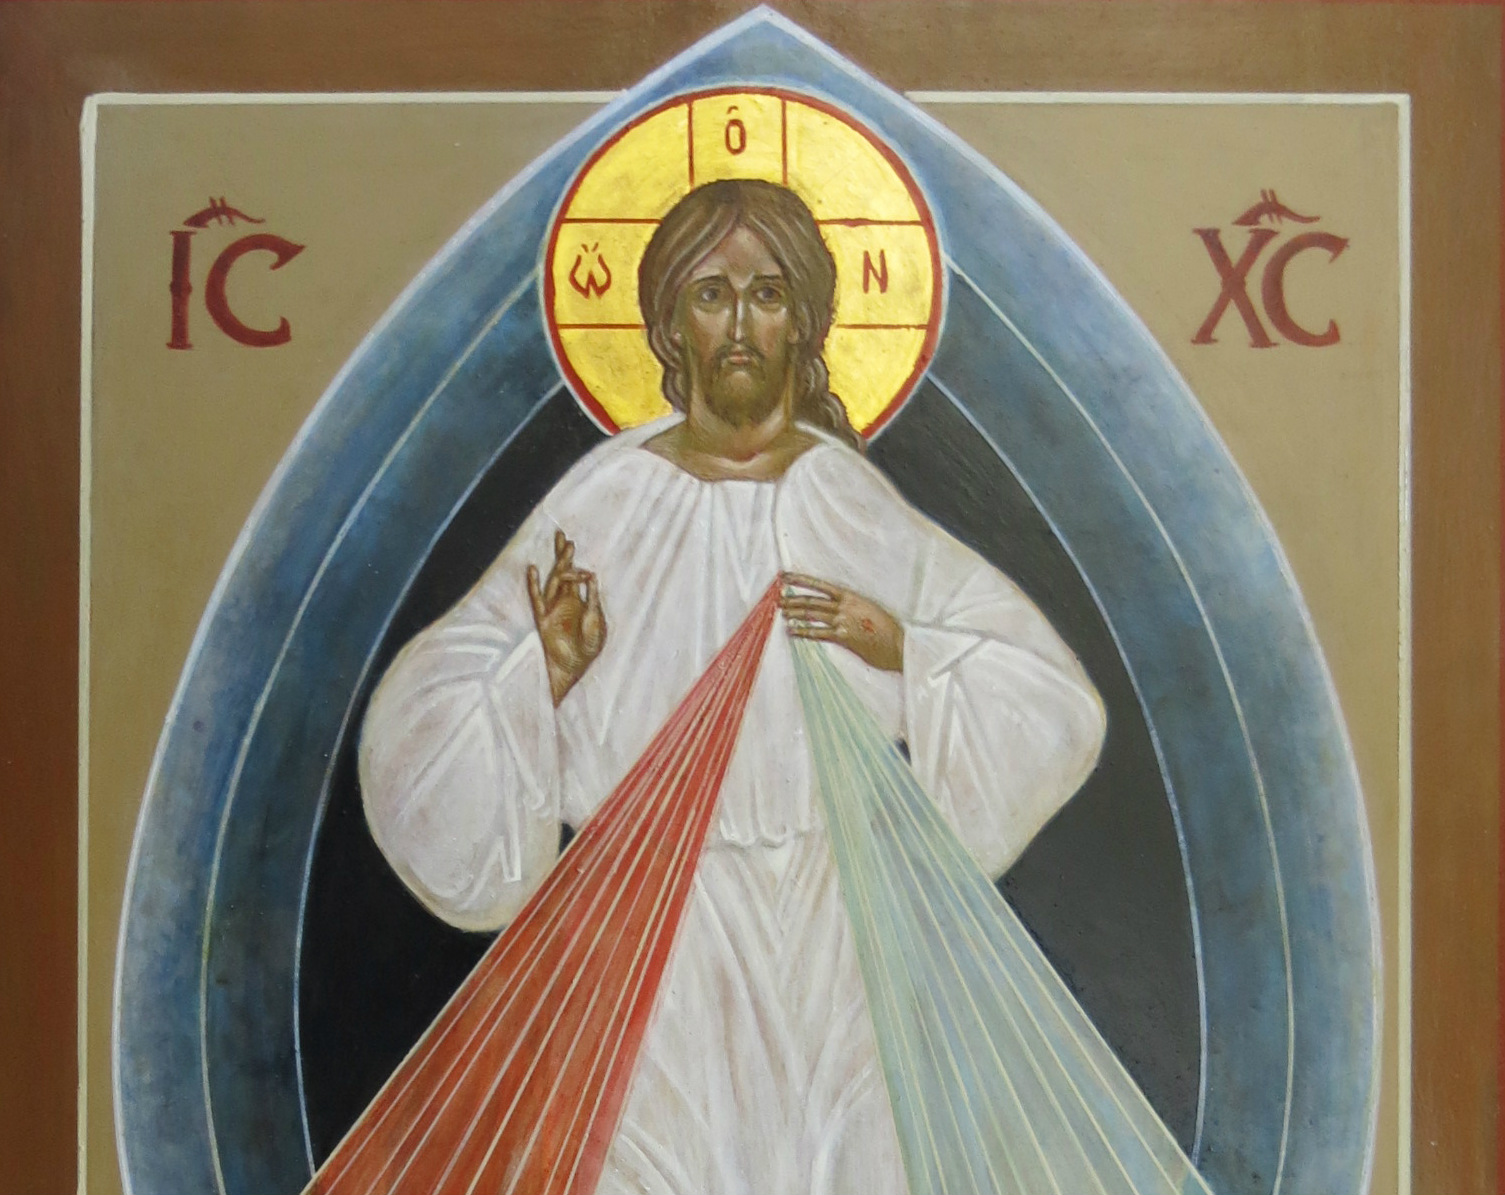 sacrament of penance reconciliation confession divine mercy sunday doubting doubter Thomas